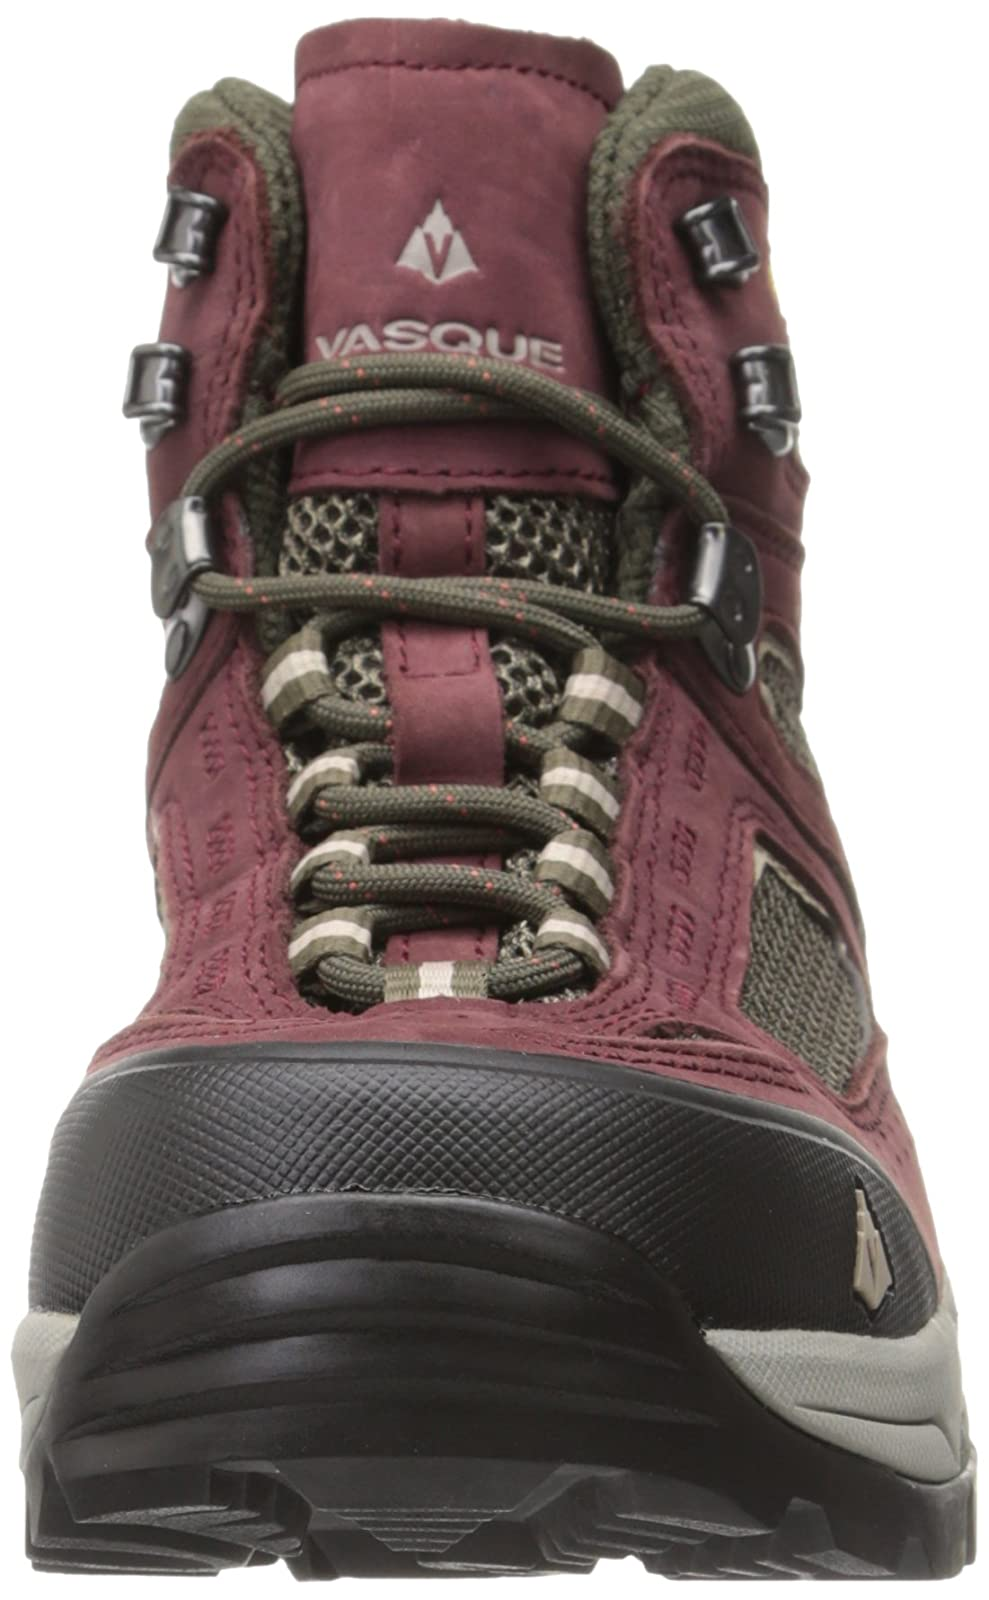 Vasque Women's Breeze 2.0 Gore-Tex Hiking Boot Little Kid US - 4